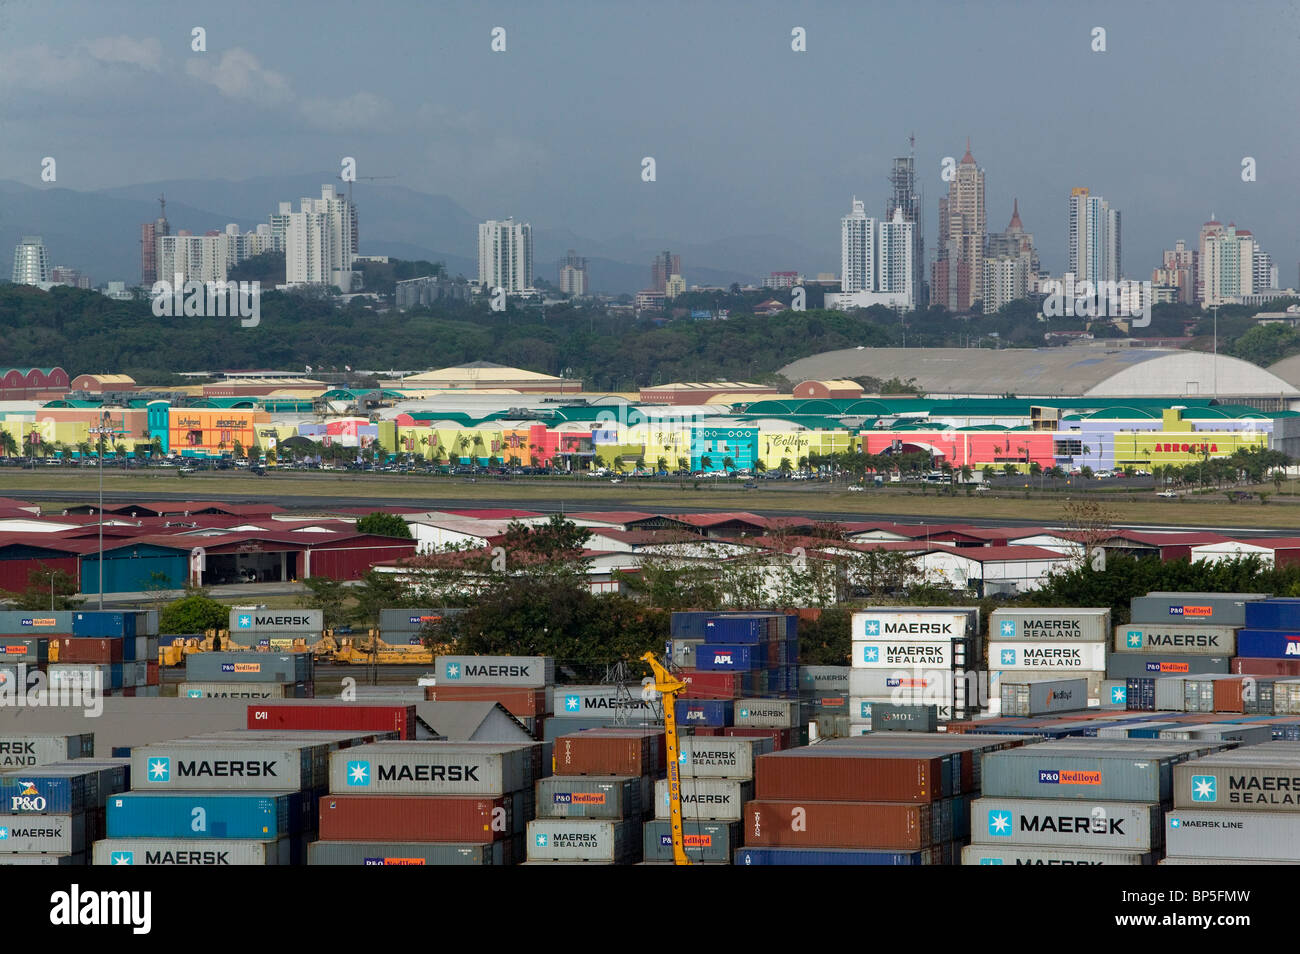 aerial view above containers Balboa Port Allbrook Mall Panama City skyline - Stock Image